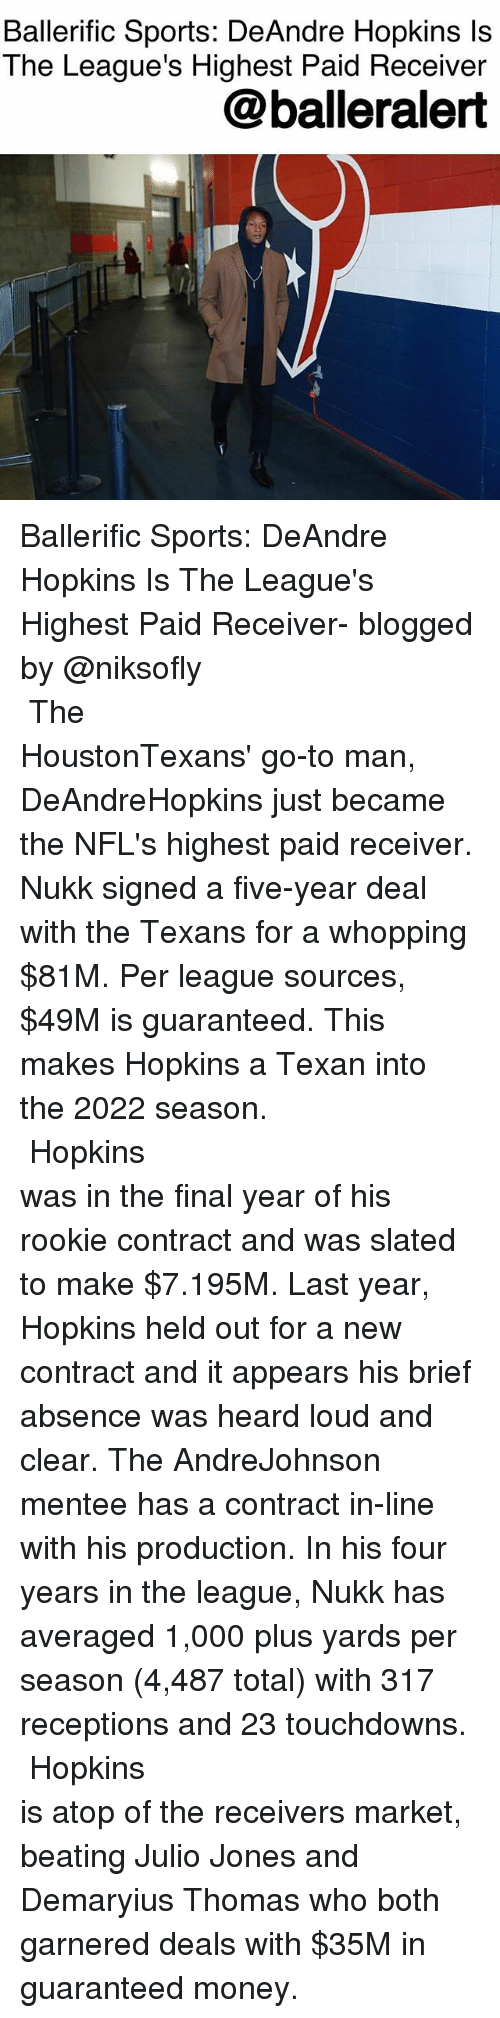 jonesing: Ballerific Sports: DeAndre Hopkins ls  The League's Highest Paid Receiver  @balleralert Ballerific Sports: DeAndre Hopkins Is The League's Highest Paid Receiver- blogged by @niksofly ⠀⠀⠀⠀⠀⠀⠀⠀⠀⠀⠀⠀⠀⠀⠀⠀⠀⠀⠀⠀⠀⠀⠀⠀⠀⠀⠀⠀⠀⠀⠀⠀⠀⠀⠀⠀ The HoustonTexans' go-to man, DeAndreHopkins just became the NFL's highest paid receiver. Nukk signed a five-year deal with the Texans for a whopping $81M. Per league sources, $49M is guaranteed. This makes Hopkins a Texan into the 2022 season. ⠀⠀⠀⠀⠀⠀⠀⠀⠀⠀⠀⠀⠀⠀⠀⠀⠀⠀⠀⠀⠀⠀⠀⠀⠀⠀⠀⠀⠀⠀⠀⠀⠀⠀⠀⠀ Hopkins was in the final year of his rookie contract and was slated to make $7.195M. Last year, Hopkins held out for a new contract and it appears his brief absence was heard loud and clear. The AndreJohnson mentee has a contract in-line with his production. In his four years in the league, Nukk has averaged 1,000 plus yards per season (4,487 total) with 317 receptions and 23 touchdowns. ⠀⠀⠀⠀⠀⠀⠀⠀⠀⠀⠀⠀⠀⠀⠀⠀⠀⠀⠀⠀⠀⠀⠀⠀⠀⠀⠀⠀⠀⠀⠀⠀⠀⠀⠀⠀ Hopkins is atop of the receivers market, beating Julio Jones and Demaryius Thomas who both garnered deals with $35M in guaranteed money.